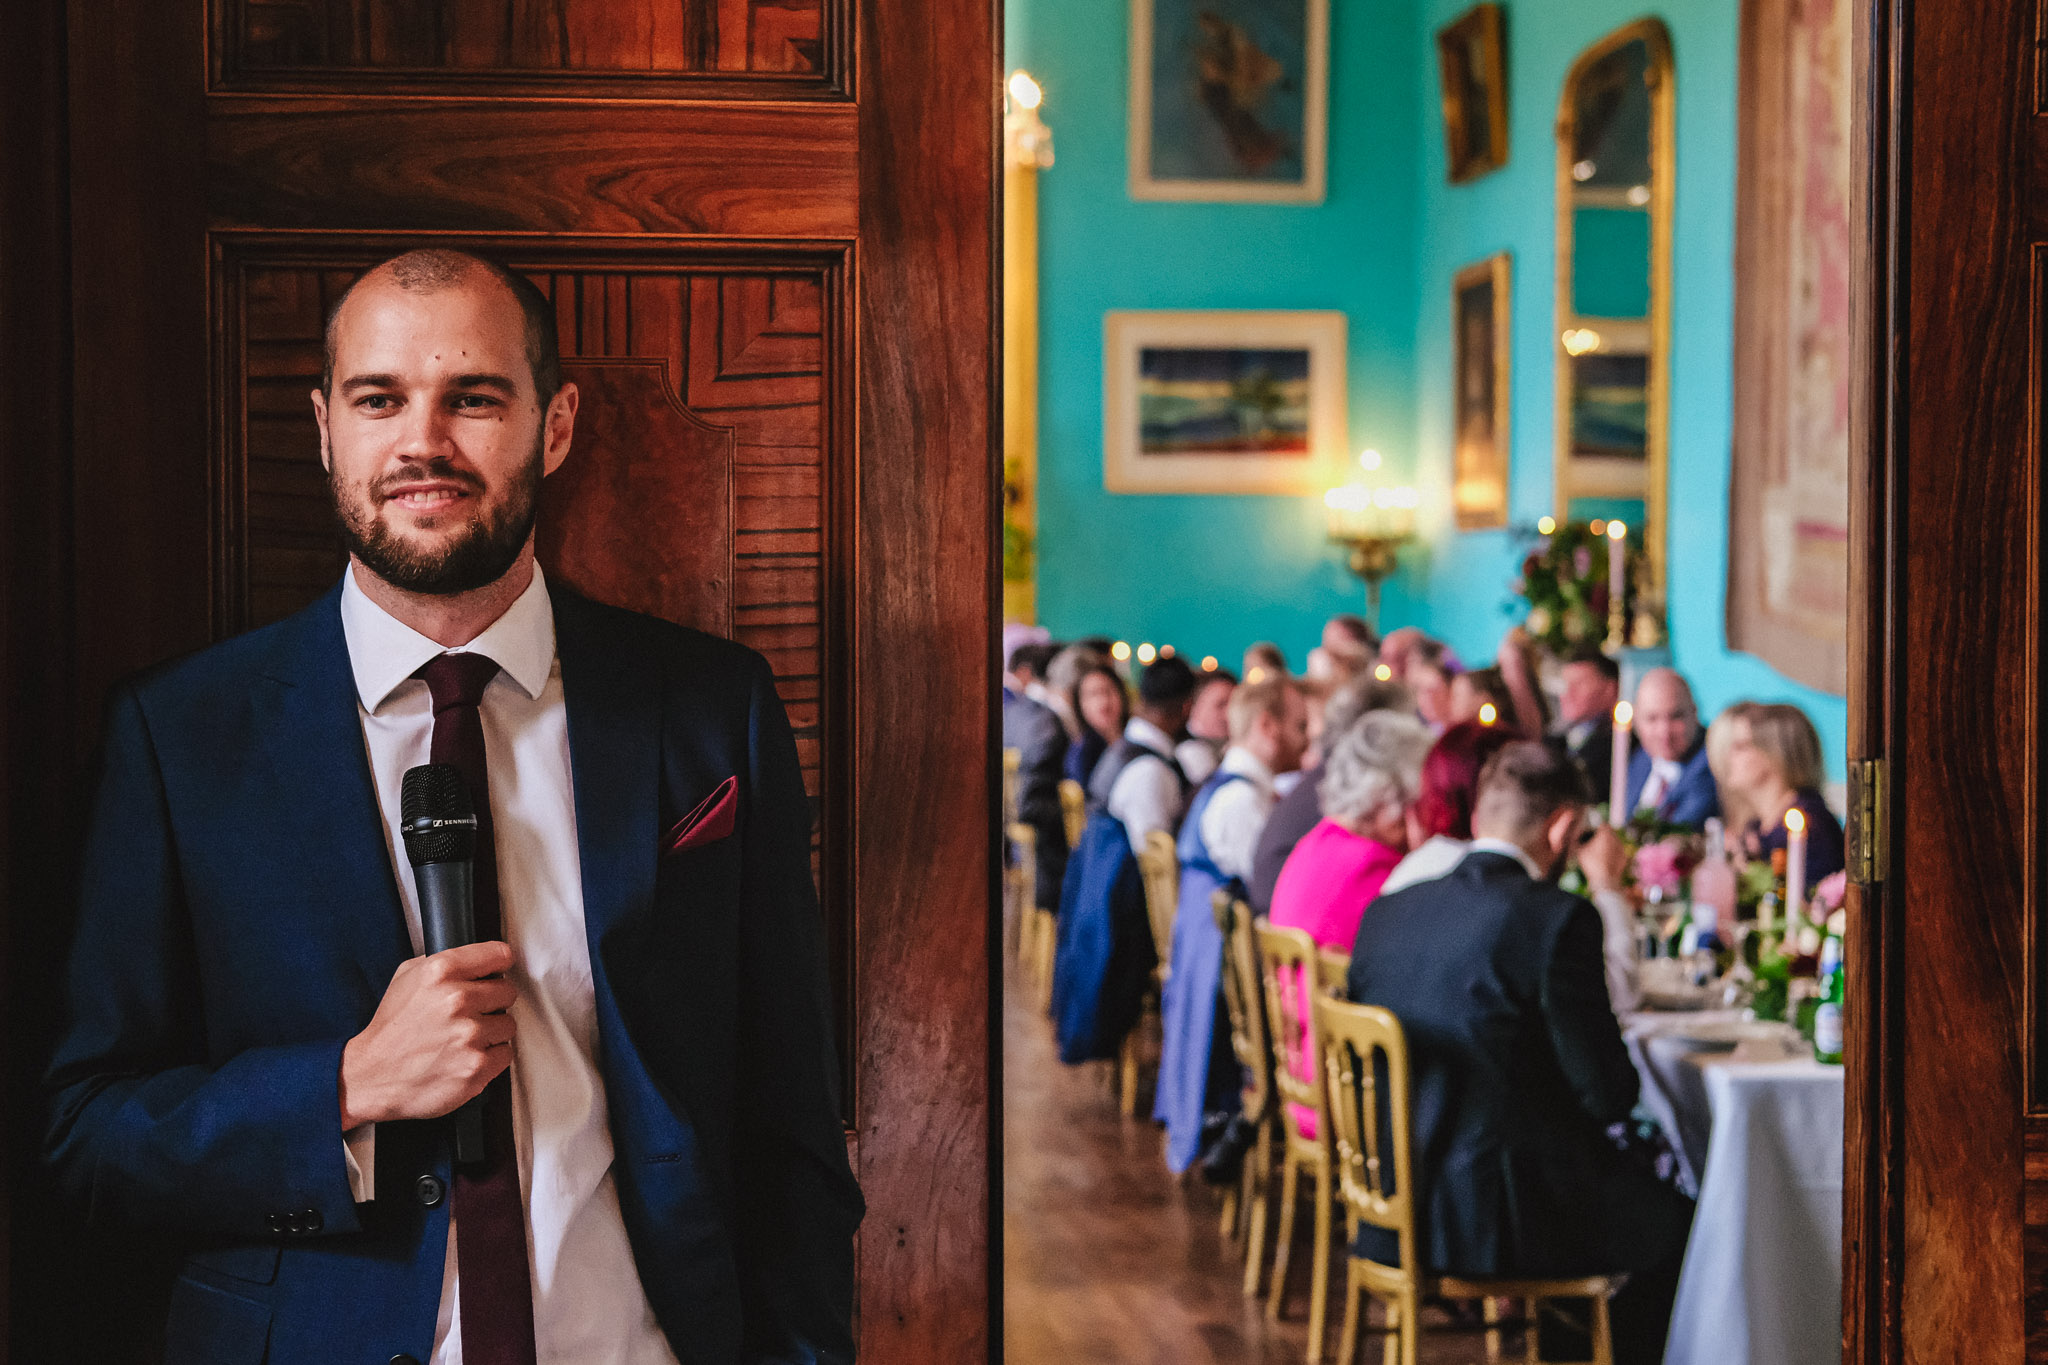 Guest waits outside room to make his  toast - photo by Andrew Billington Photography